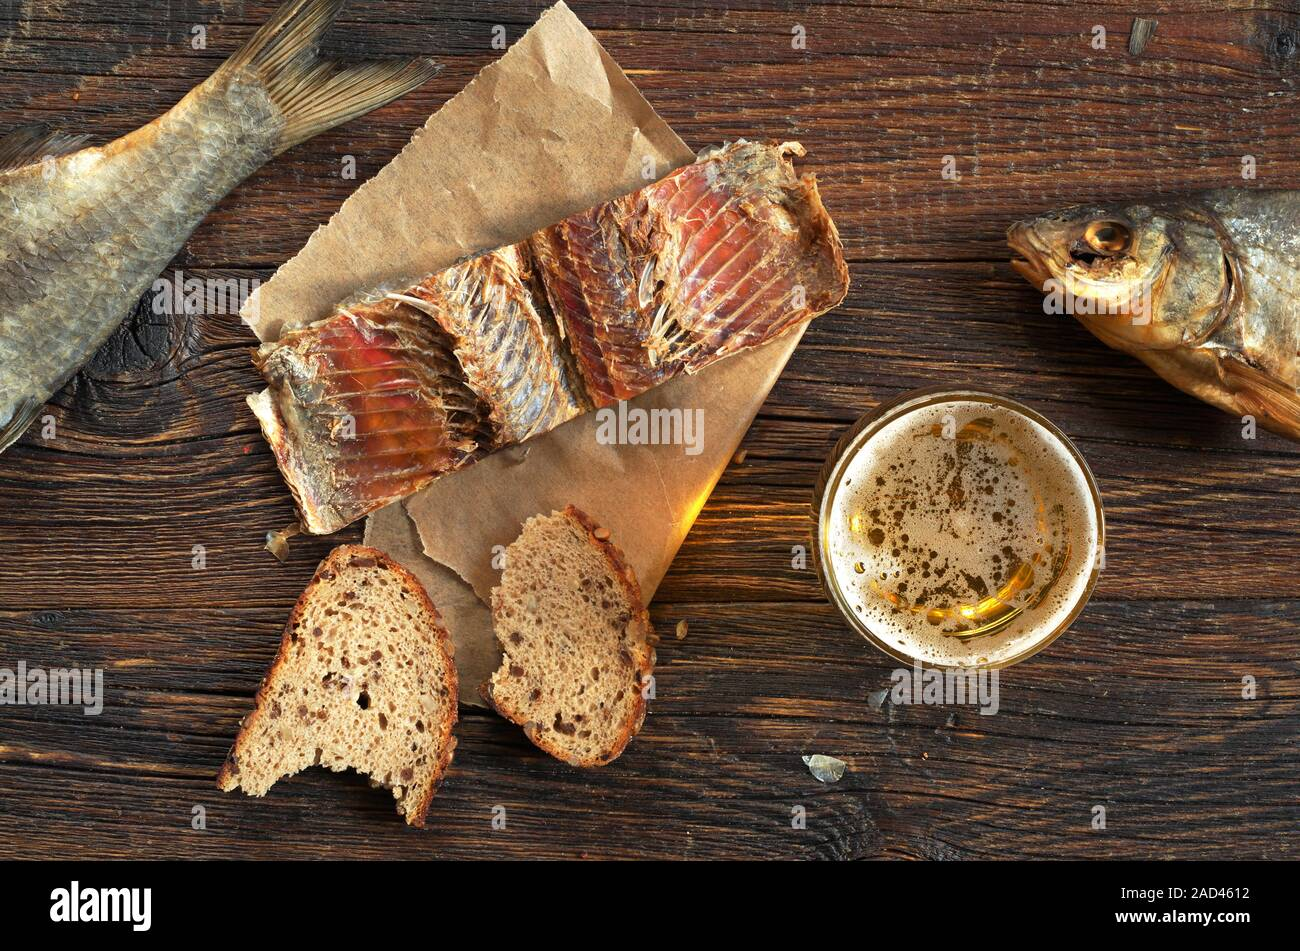 Glass of beer, salted fish and bread on old wooden table, top view Stock Photo